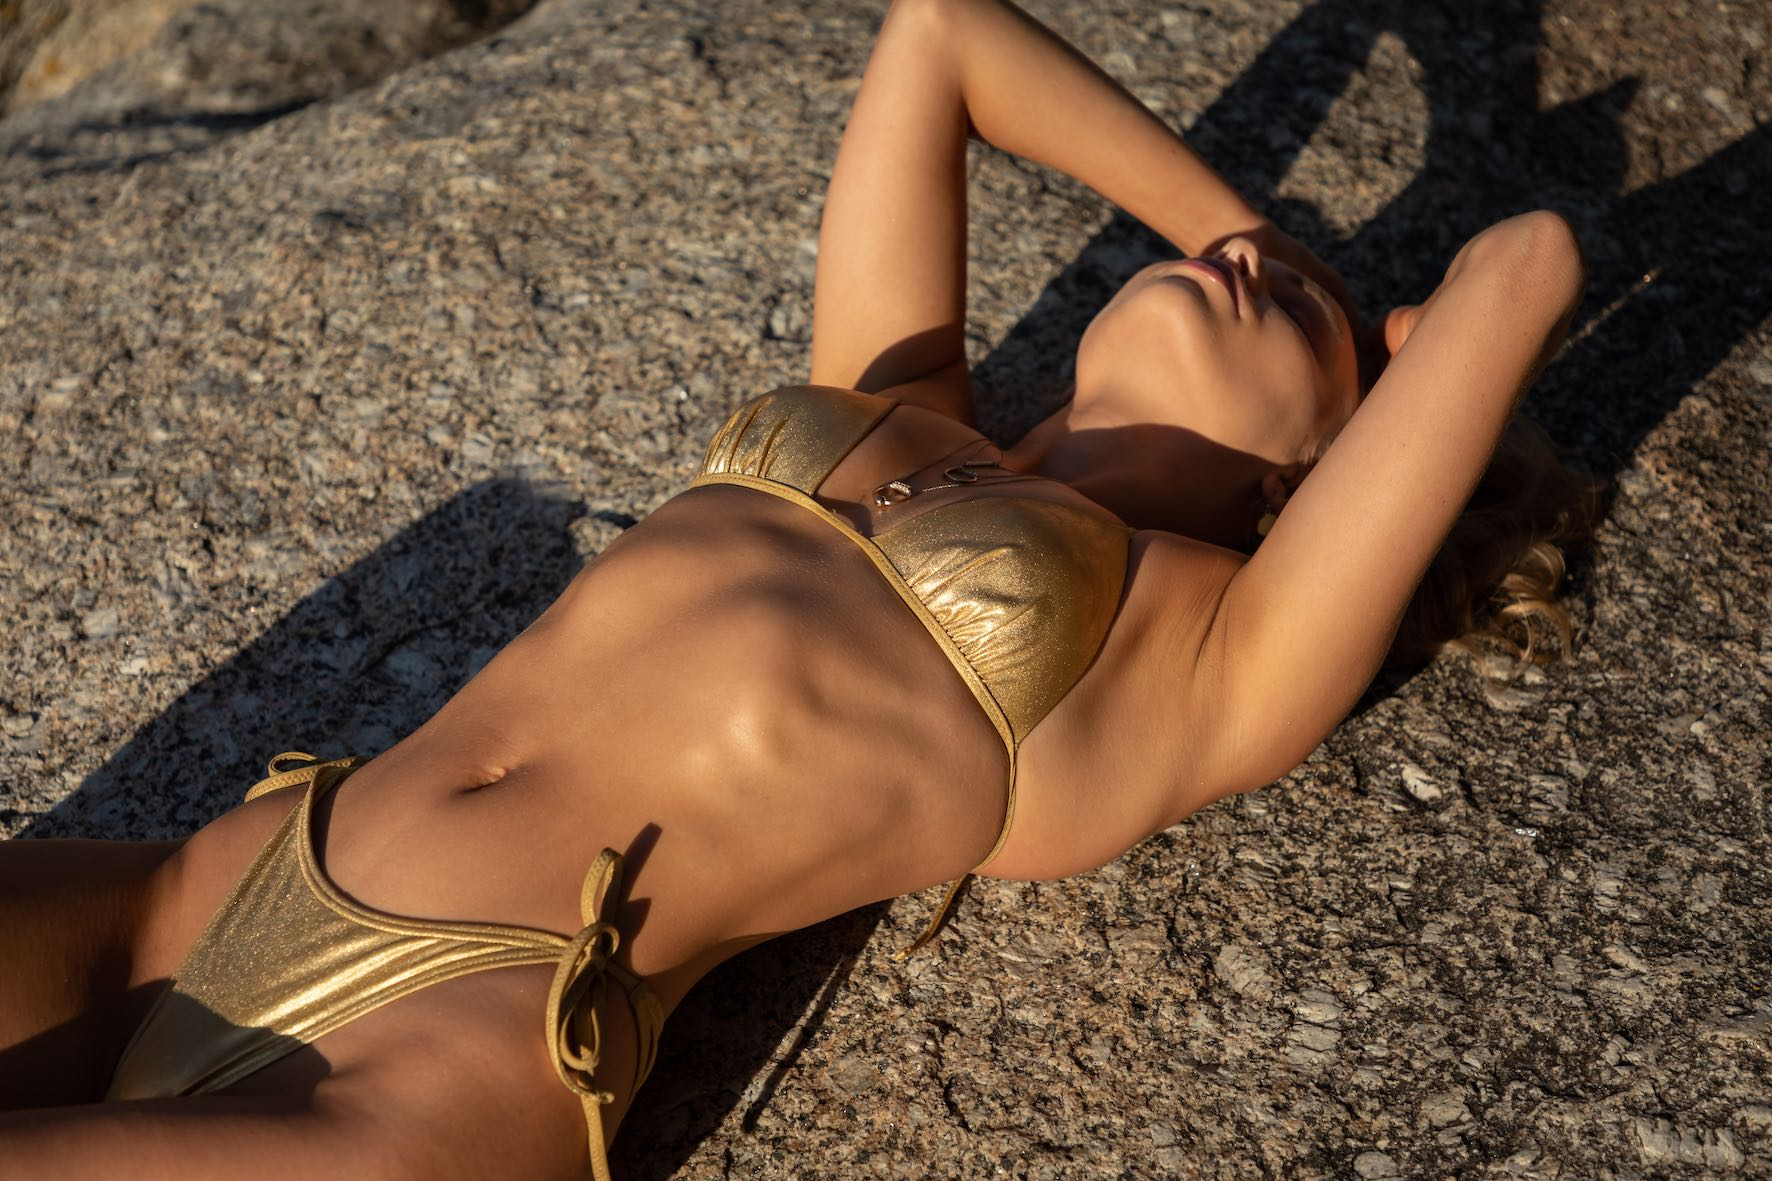 Meet Bianca Ludik in our SA Babes Feature